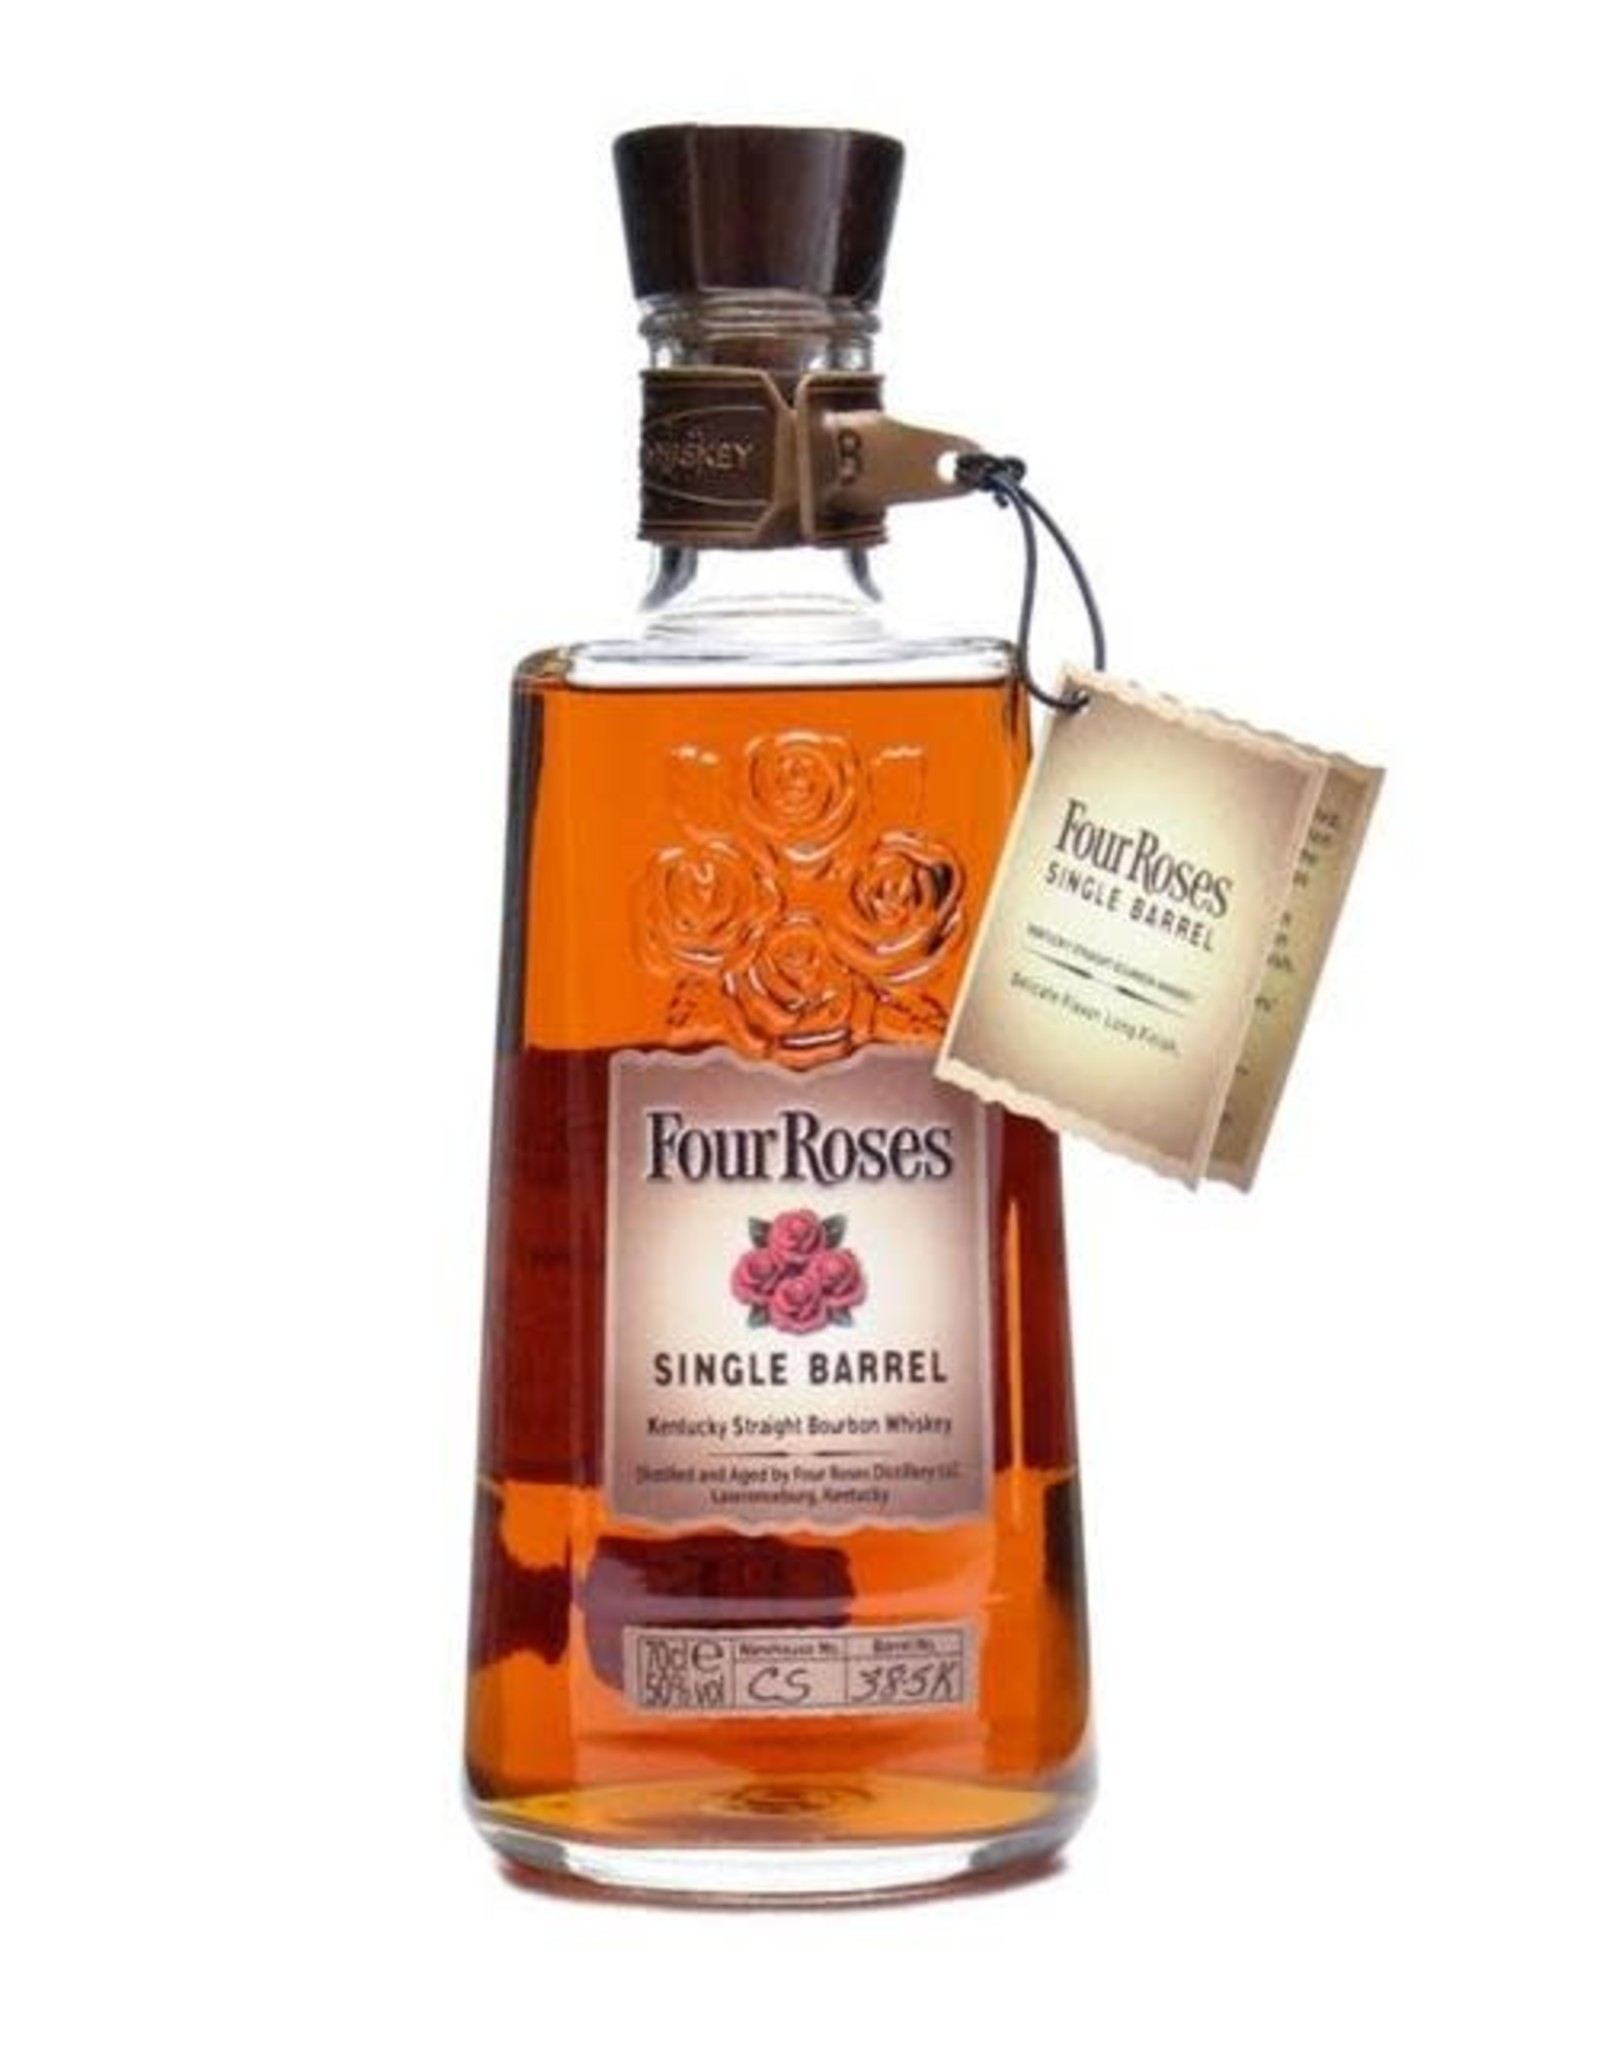 FOUR ROSES SINGLE BARREL BOURBON 750mL